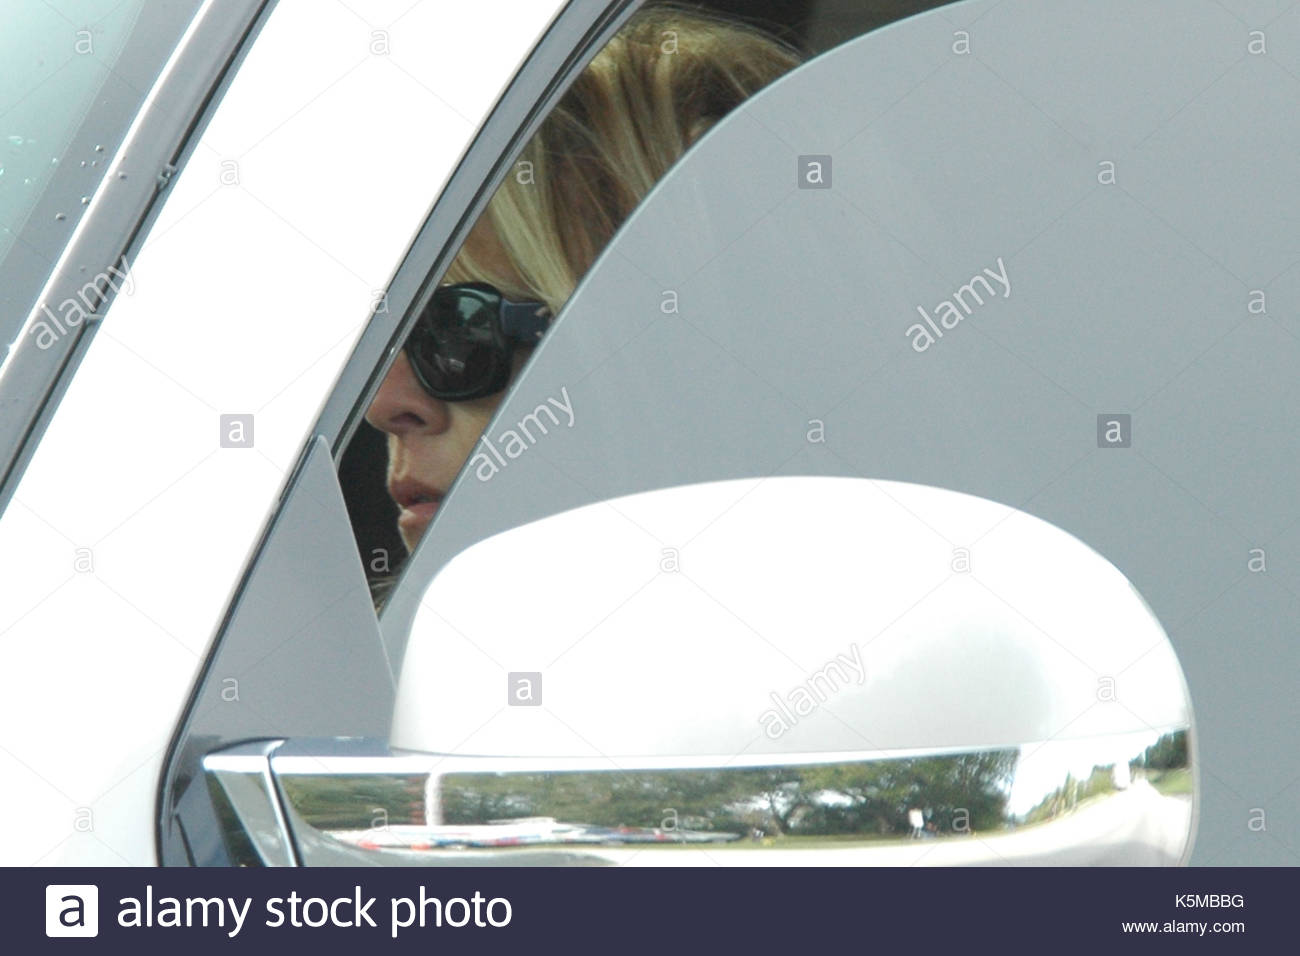 Tiger Woods Wife Stock Photos & Tiger Woods Wife Stock Images - Alamy